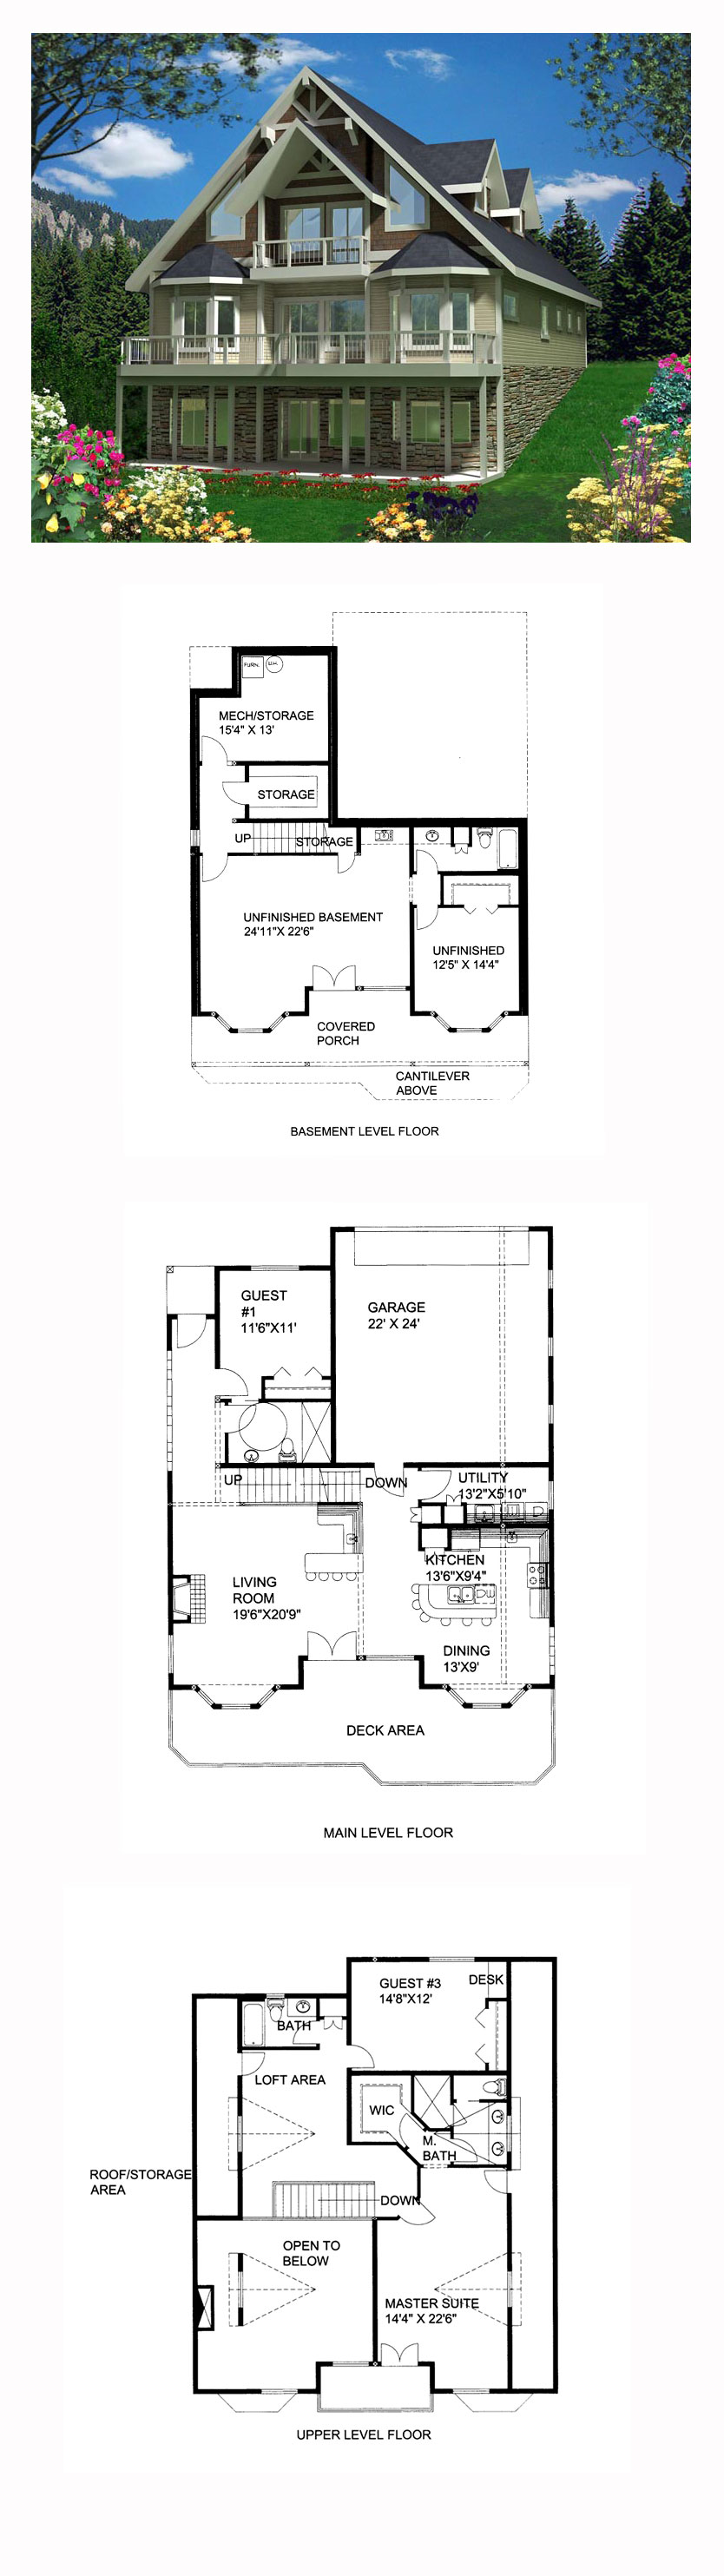 House Plan 85365 With 3 Bed 3 Bath 2 Car Garage Lake House Plans House Plans House Blueprints